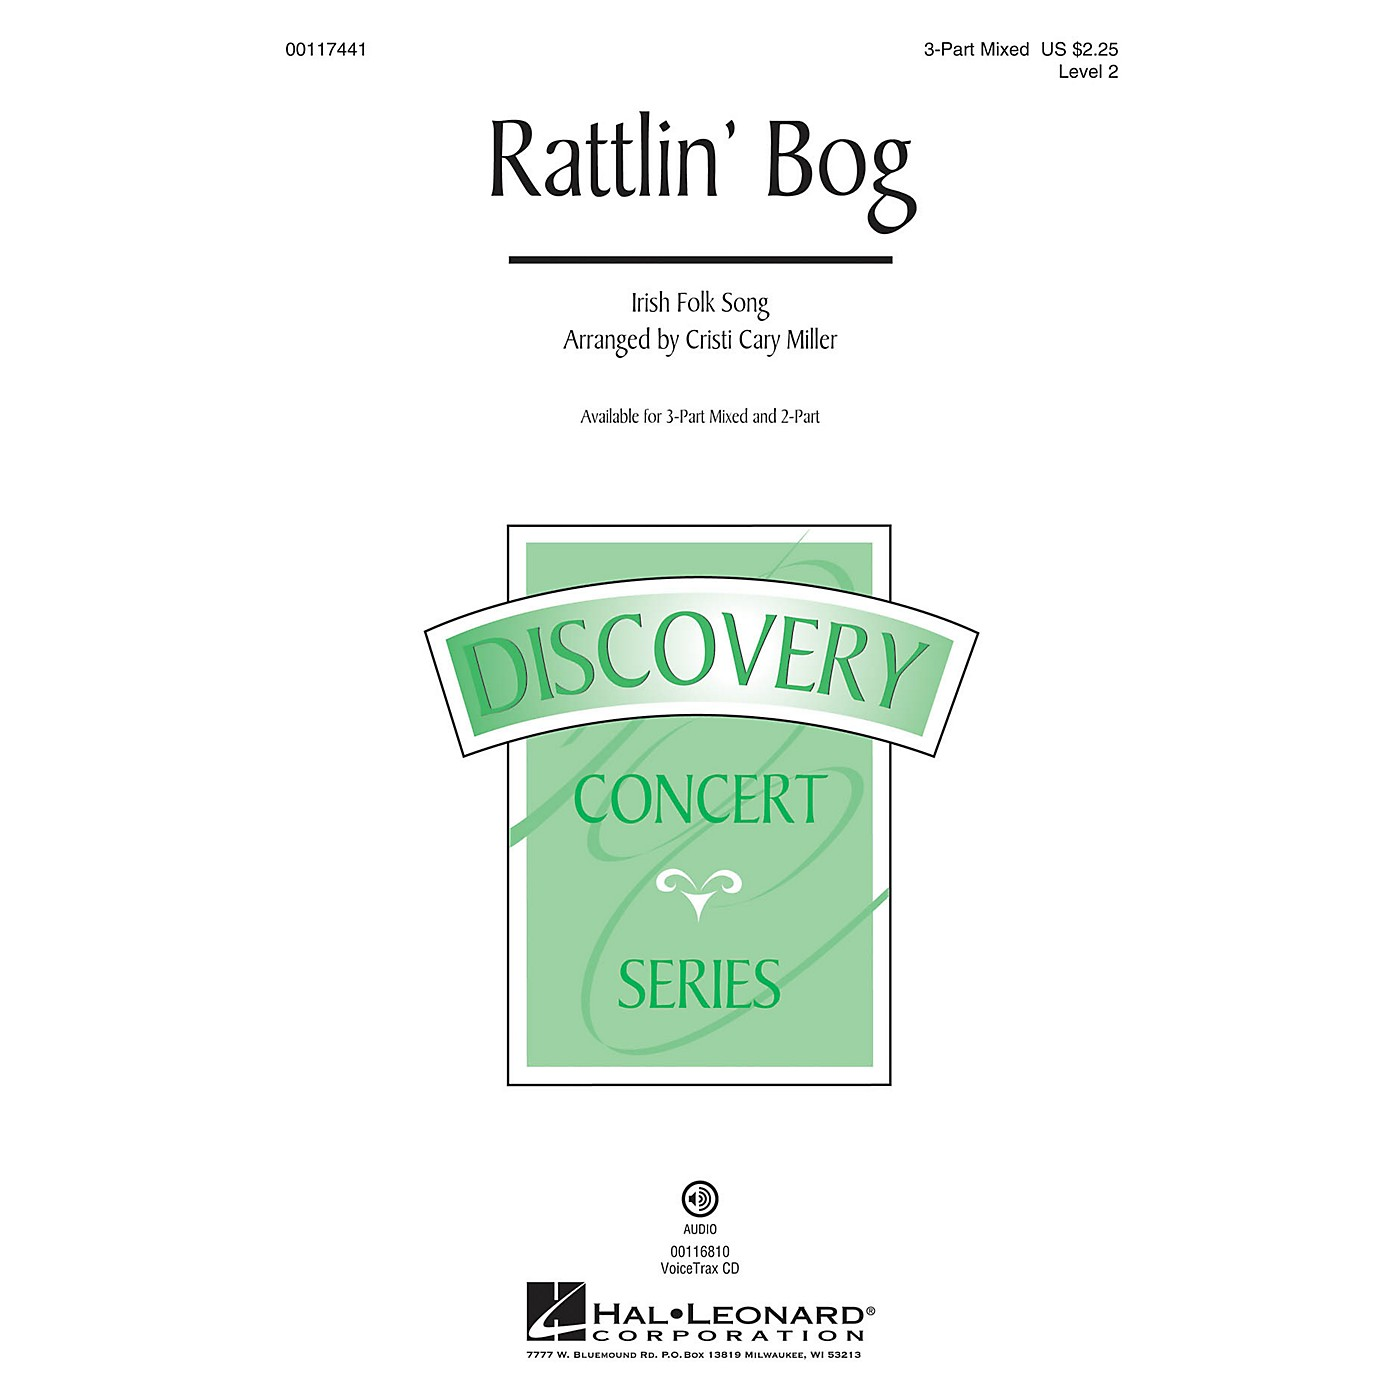 Hal Leonard Rattlin' Bog (Discovery Level 2) 3-Part Mixed arranged by Cristi Cary Miller thumbnail